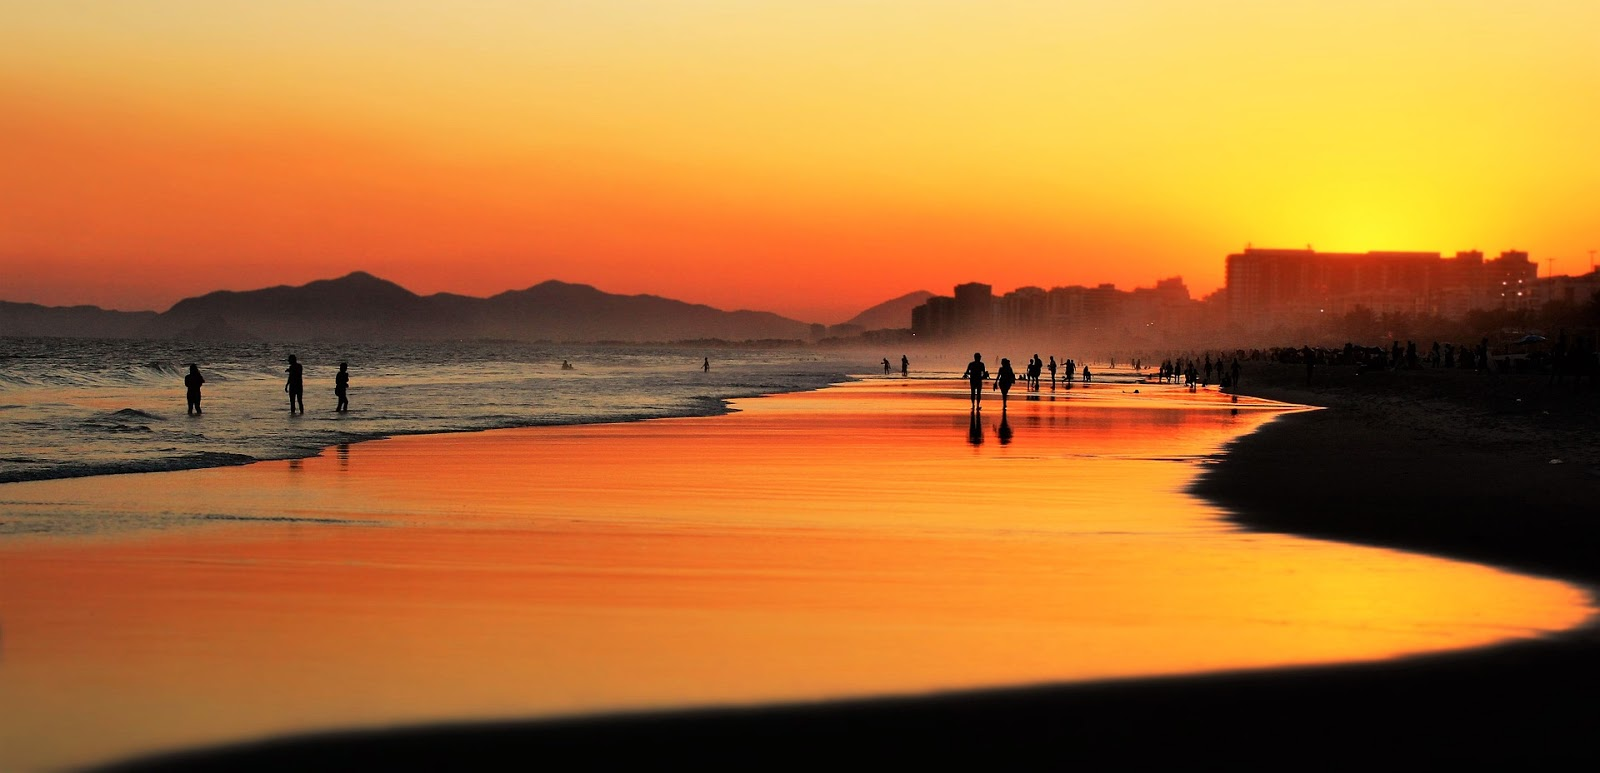 The Most Beautiful Beaches to Float the Day Away in Brazil 6